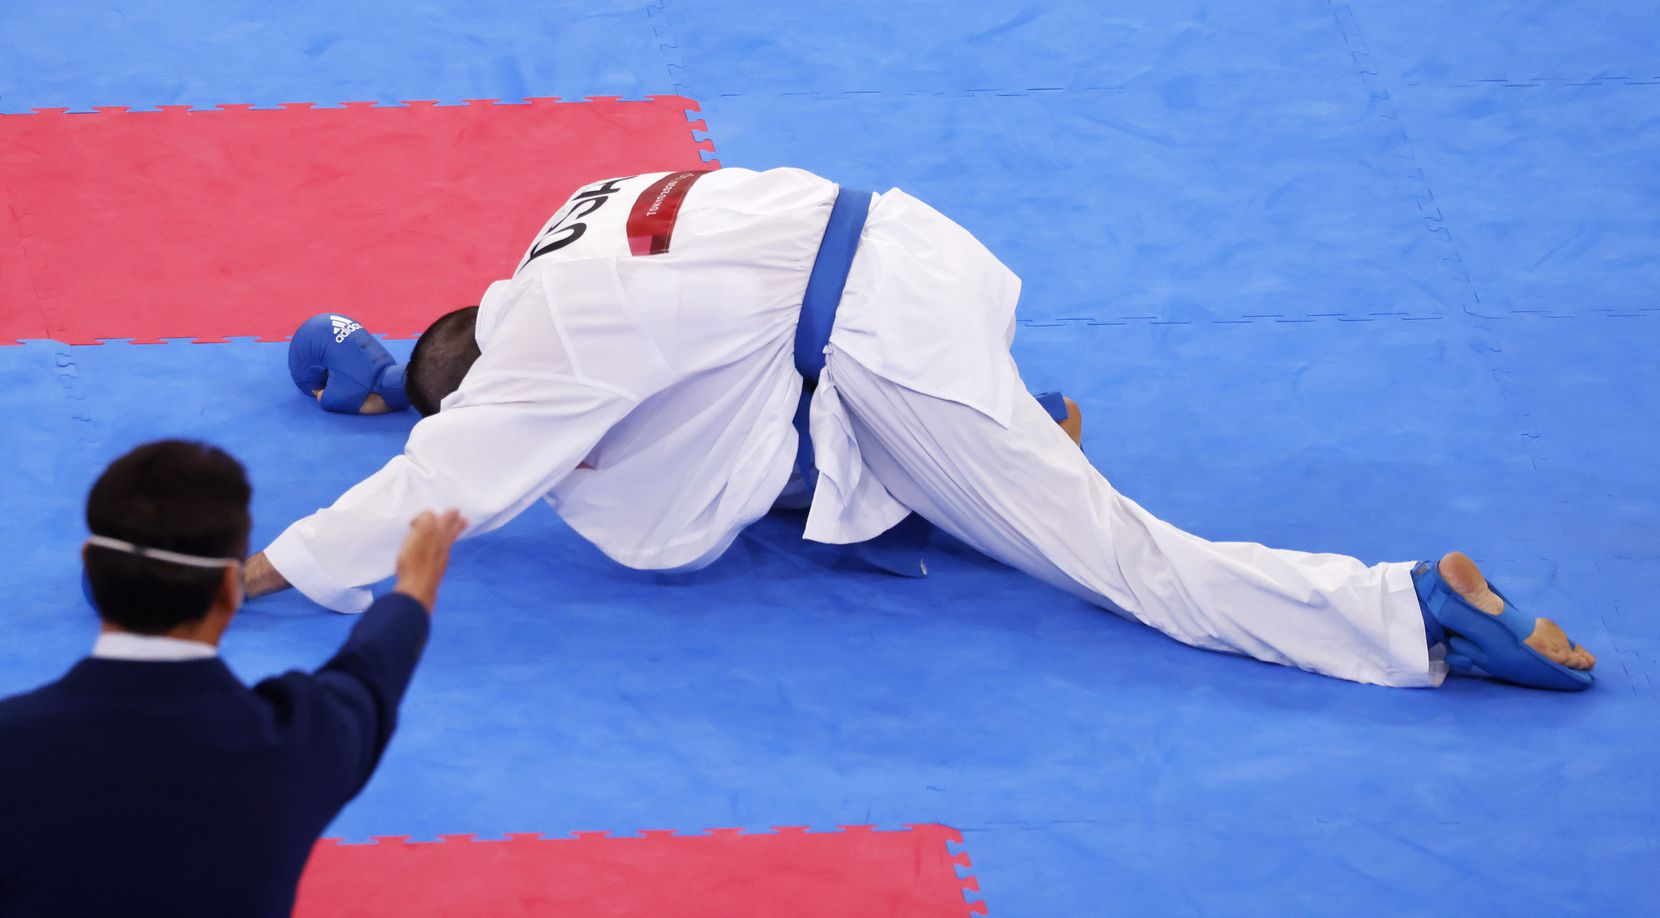 USA's Tom Scott takes minute to get up after getting hit in the head by Egypt's Abdalla Abdelaziz during the karate men's kumite -75kg elimination round at the postponed 2020 Tokyo Olympics at Nippon Budokan, on Friday, August 6, 2021, in Tokyo, Japan. Scott defeated Abdelaziz 7-6. Scott finished in fourth place in his pool and did not advance to the next round. (Vernon Bryant/The Dallas Morning News)